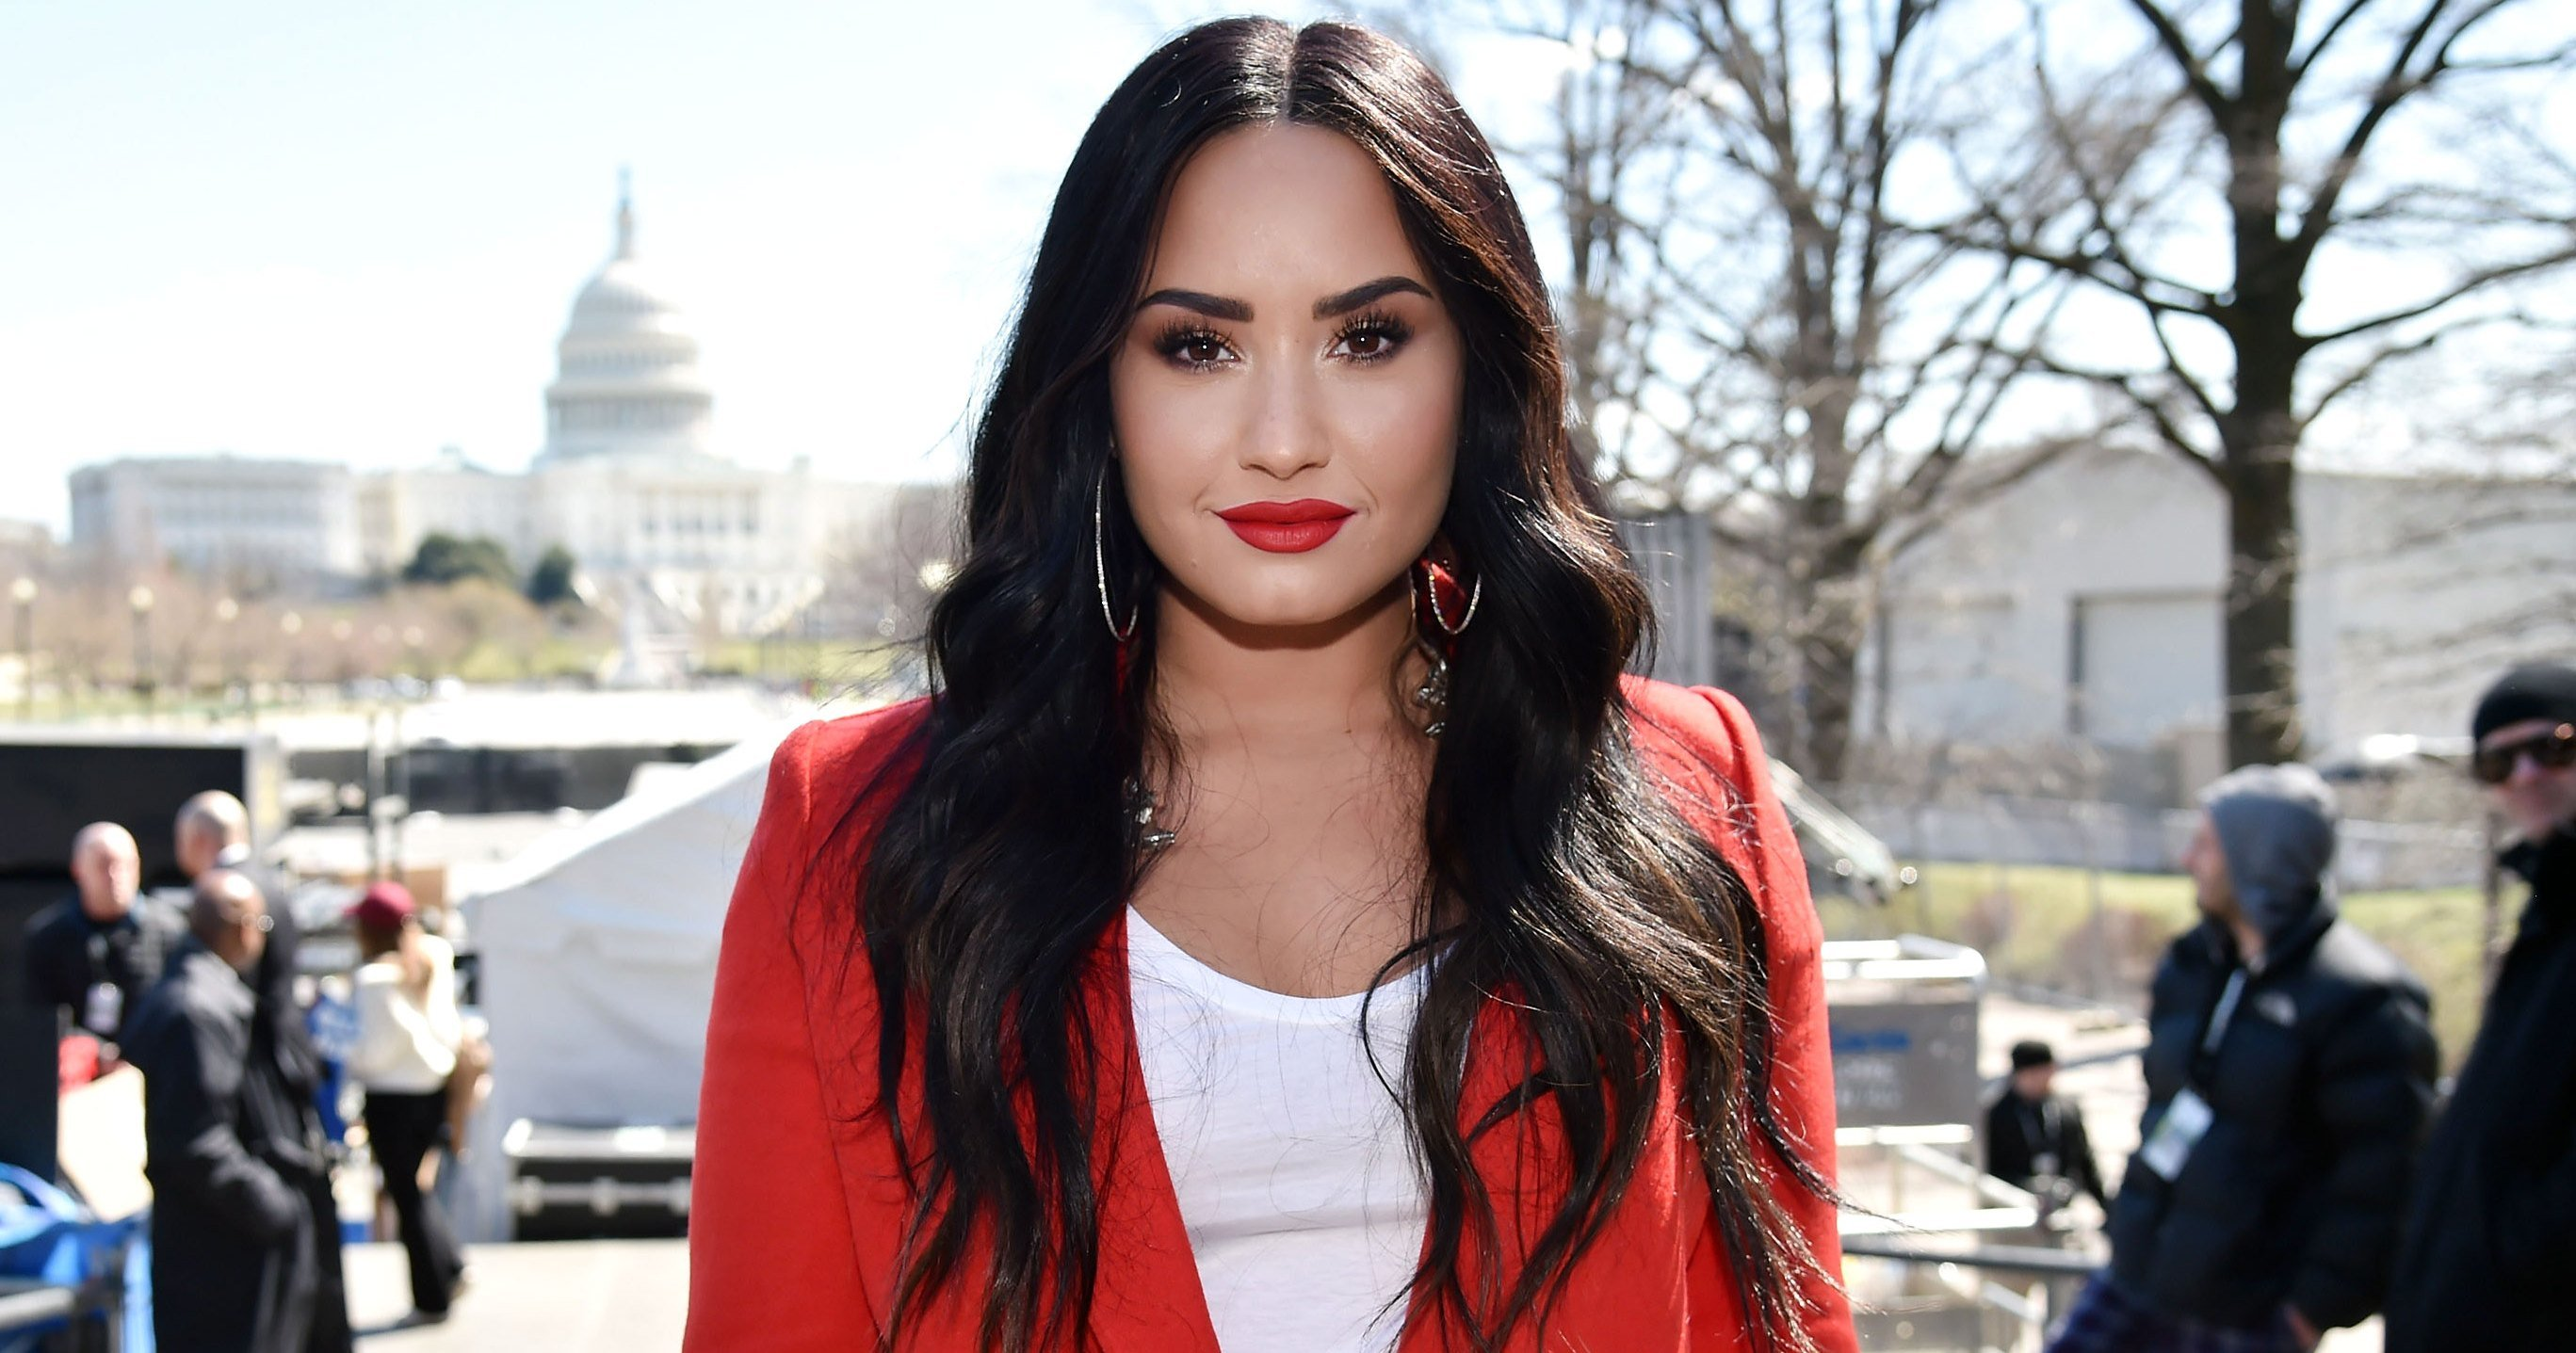 What Is the Meaning of Demi Lovato's New Rose Tattoo?